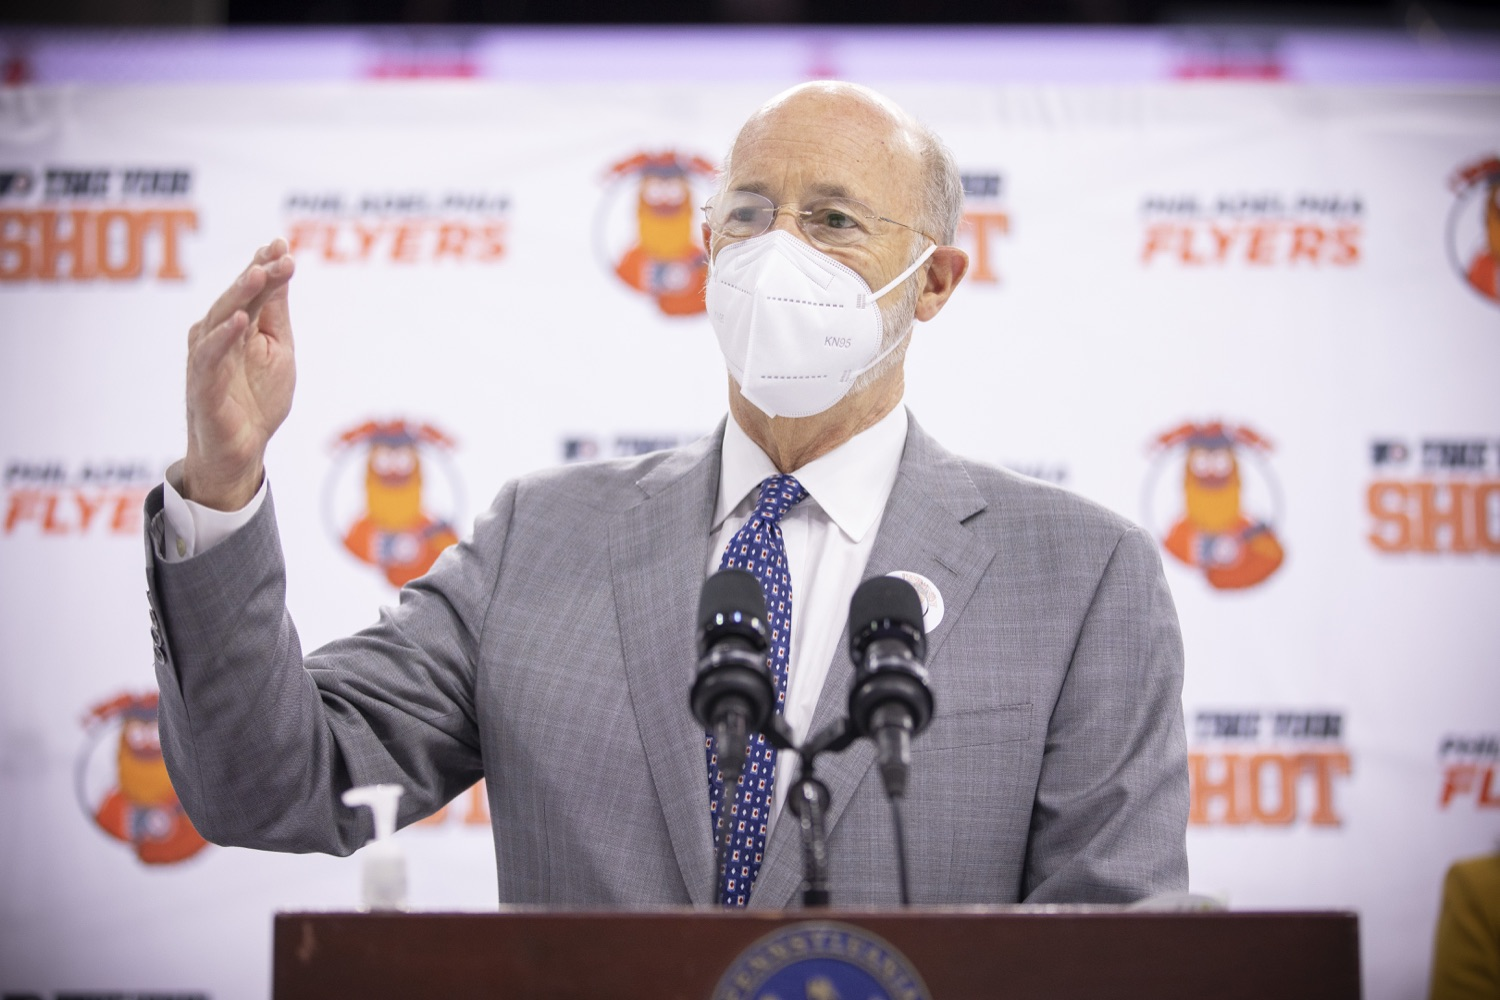 """<a href=""""https://filesource.wostreaming.net/commonwealthofpa/photo/18727_gov_vaccines_dz_023.jpg"""" target=""""_blank"""">⇣Download Photo<br></a>Pennsylvania Governor Tom Wolf speaking with the press.   Governor Tom Wolf today visited the Philadelphia Flyers organization at the Wells Fargo Center in Philadelphia to discuss COVID-19 vaccine efforts in Pennsylvania. The Flyers recently launched a comprehensive COVID-19 vaccine campaign, Take Your Shot, encouraging Pennsylvanians to get vaccinated.  Philadelphia, PA  MAY 3, 2021"""